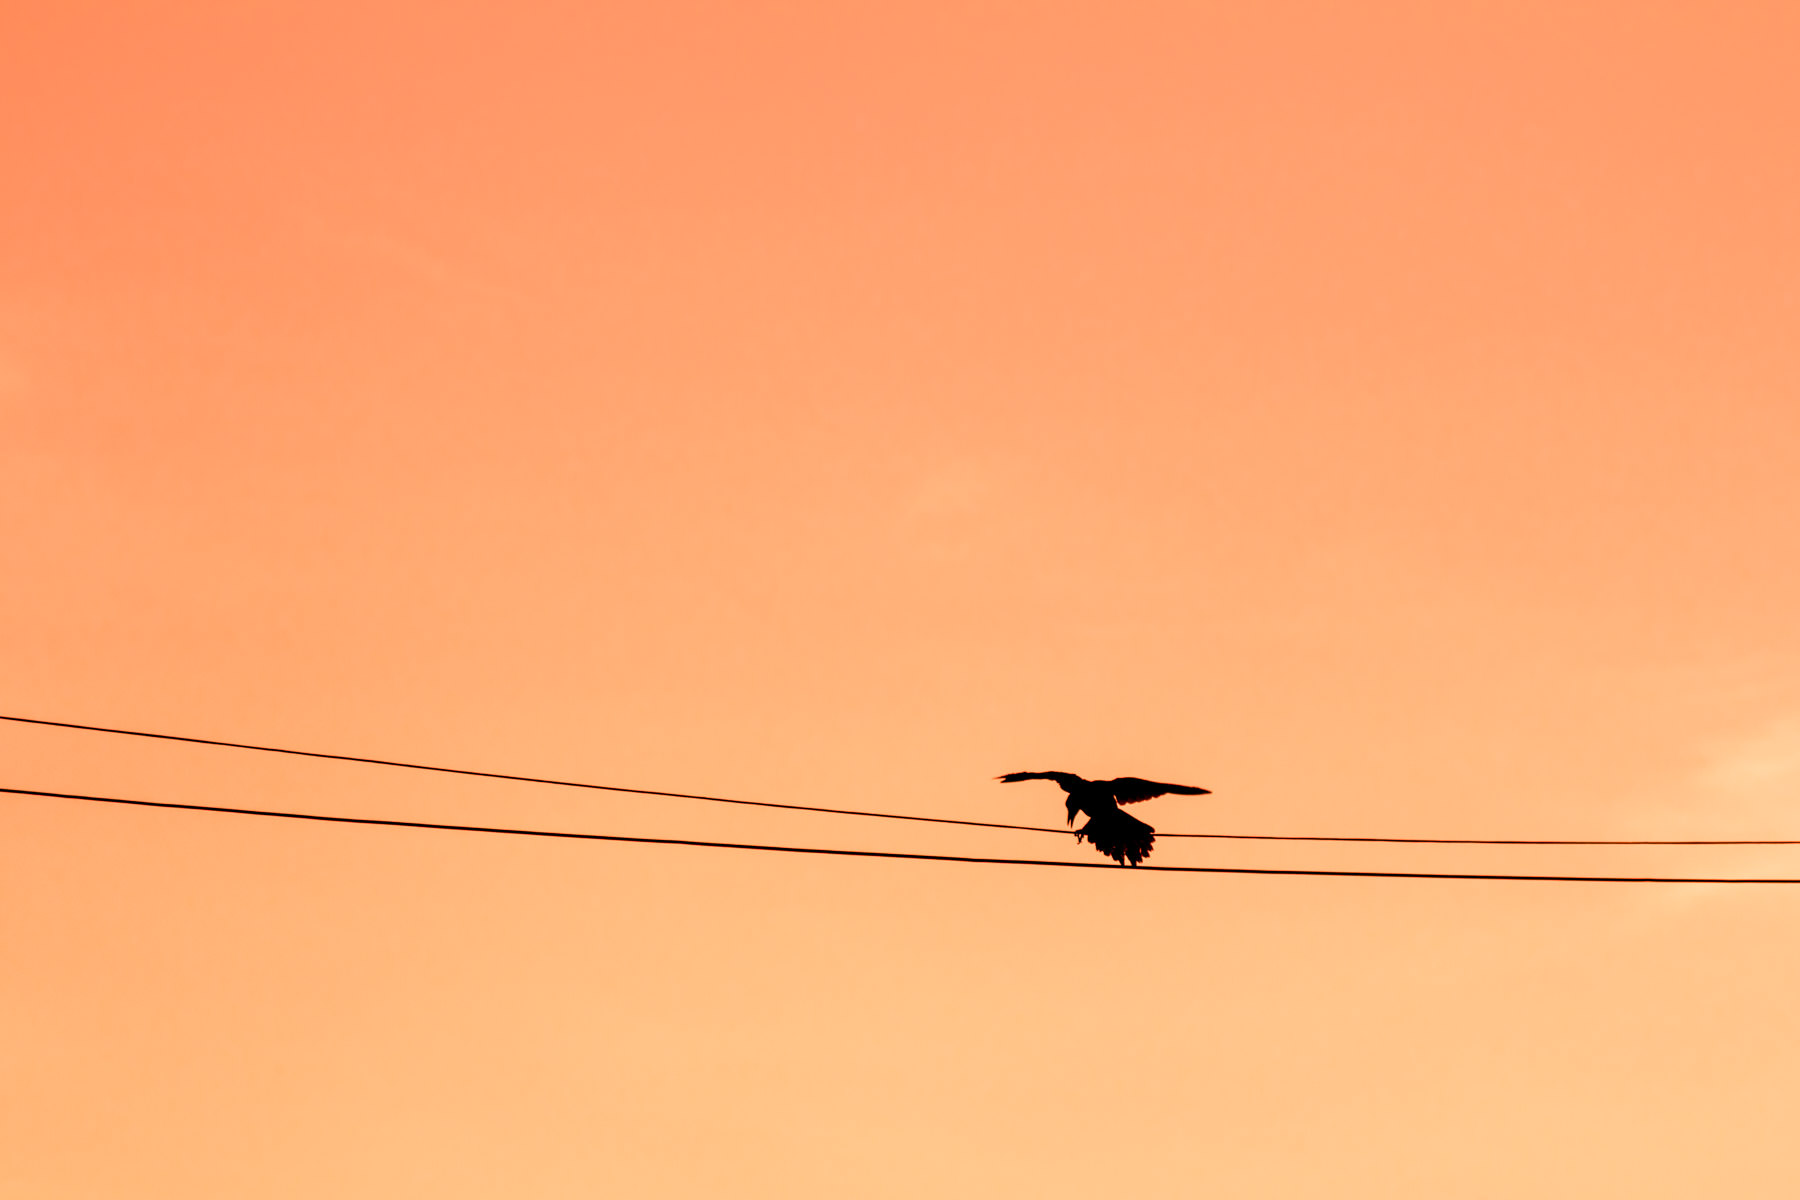 A bird lands on a power line as the sun sets over Dallas' West End district.